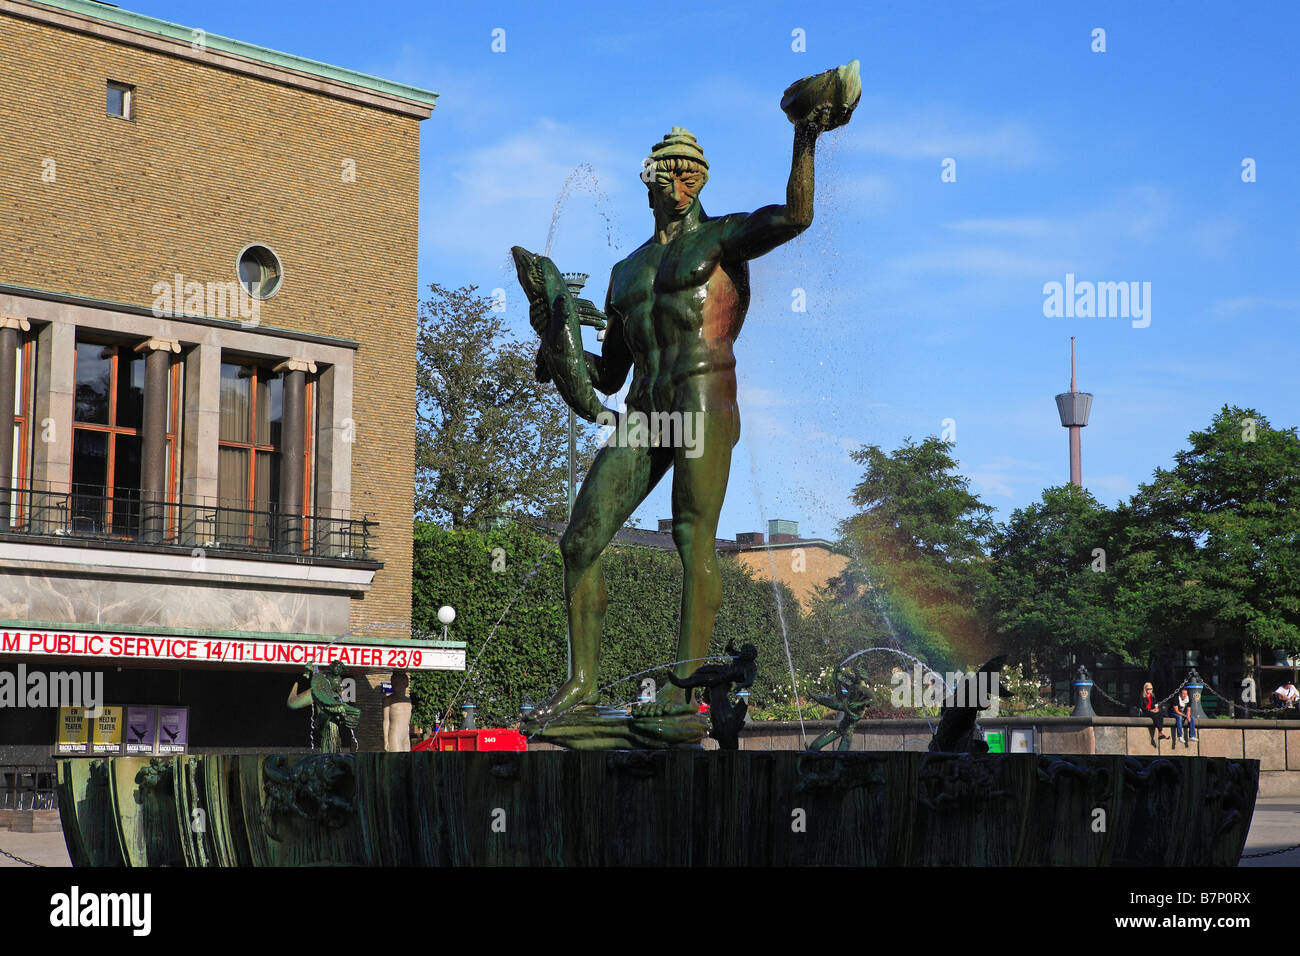 Sweden, Gothenburg, Gotaplatsen, Statue Of Carl Milles' Poseidon In Front Of Stadsteatern (the City Theatre) - Stock Image